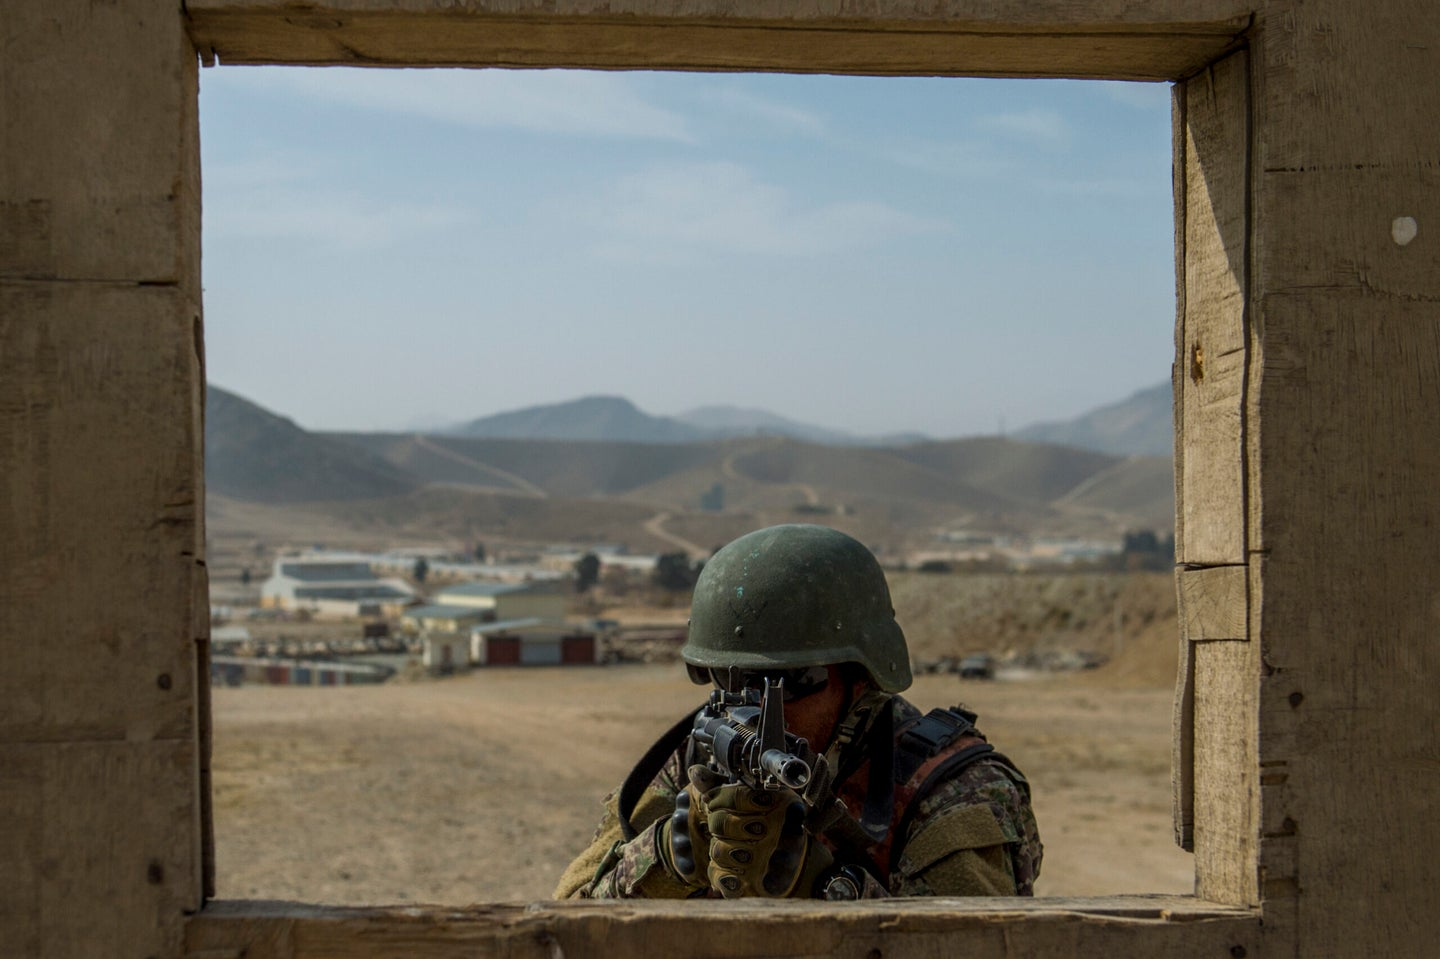 Senior Islamic State militant reportedly killed by Afghan special forces